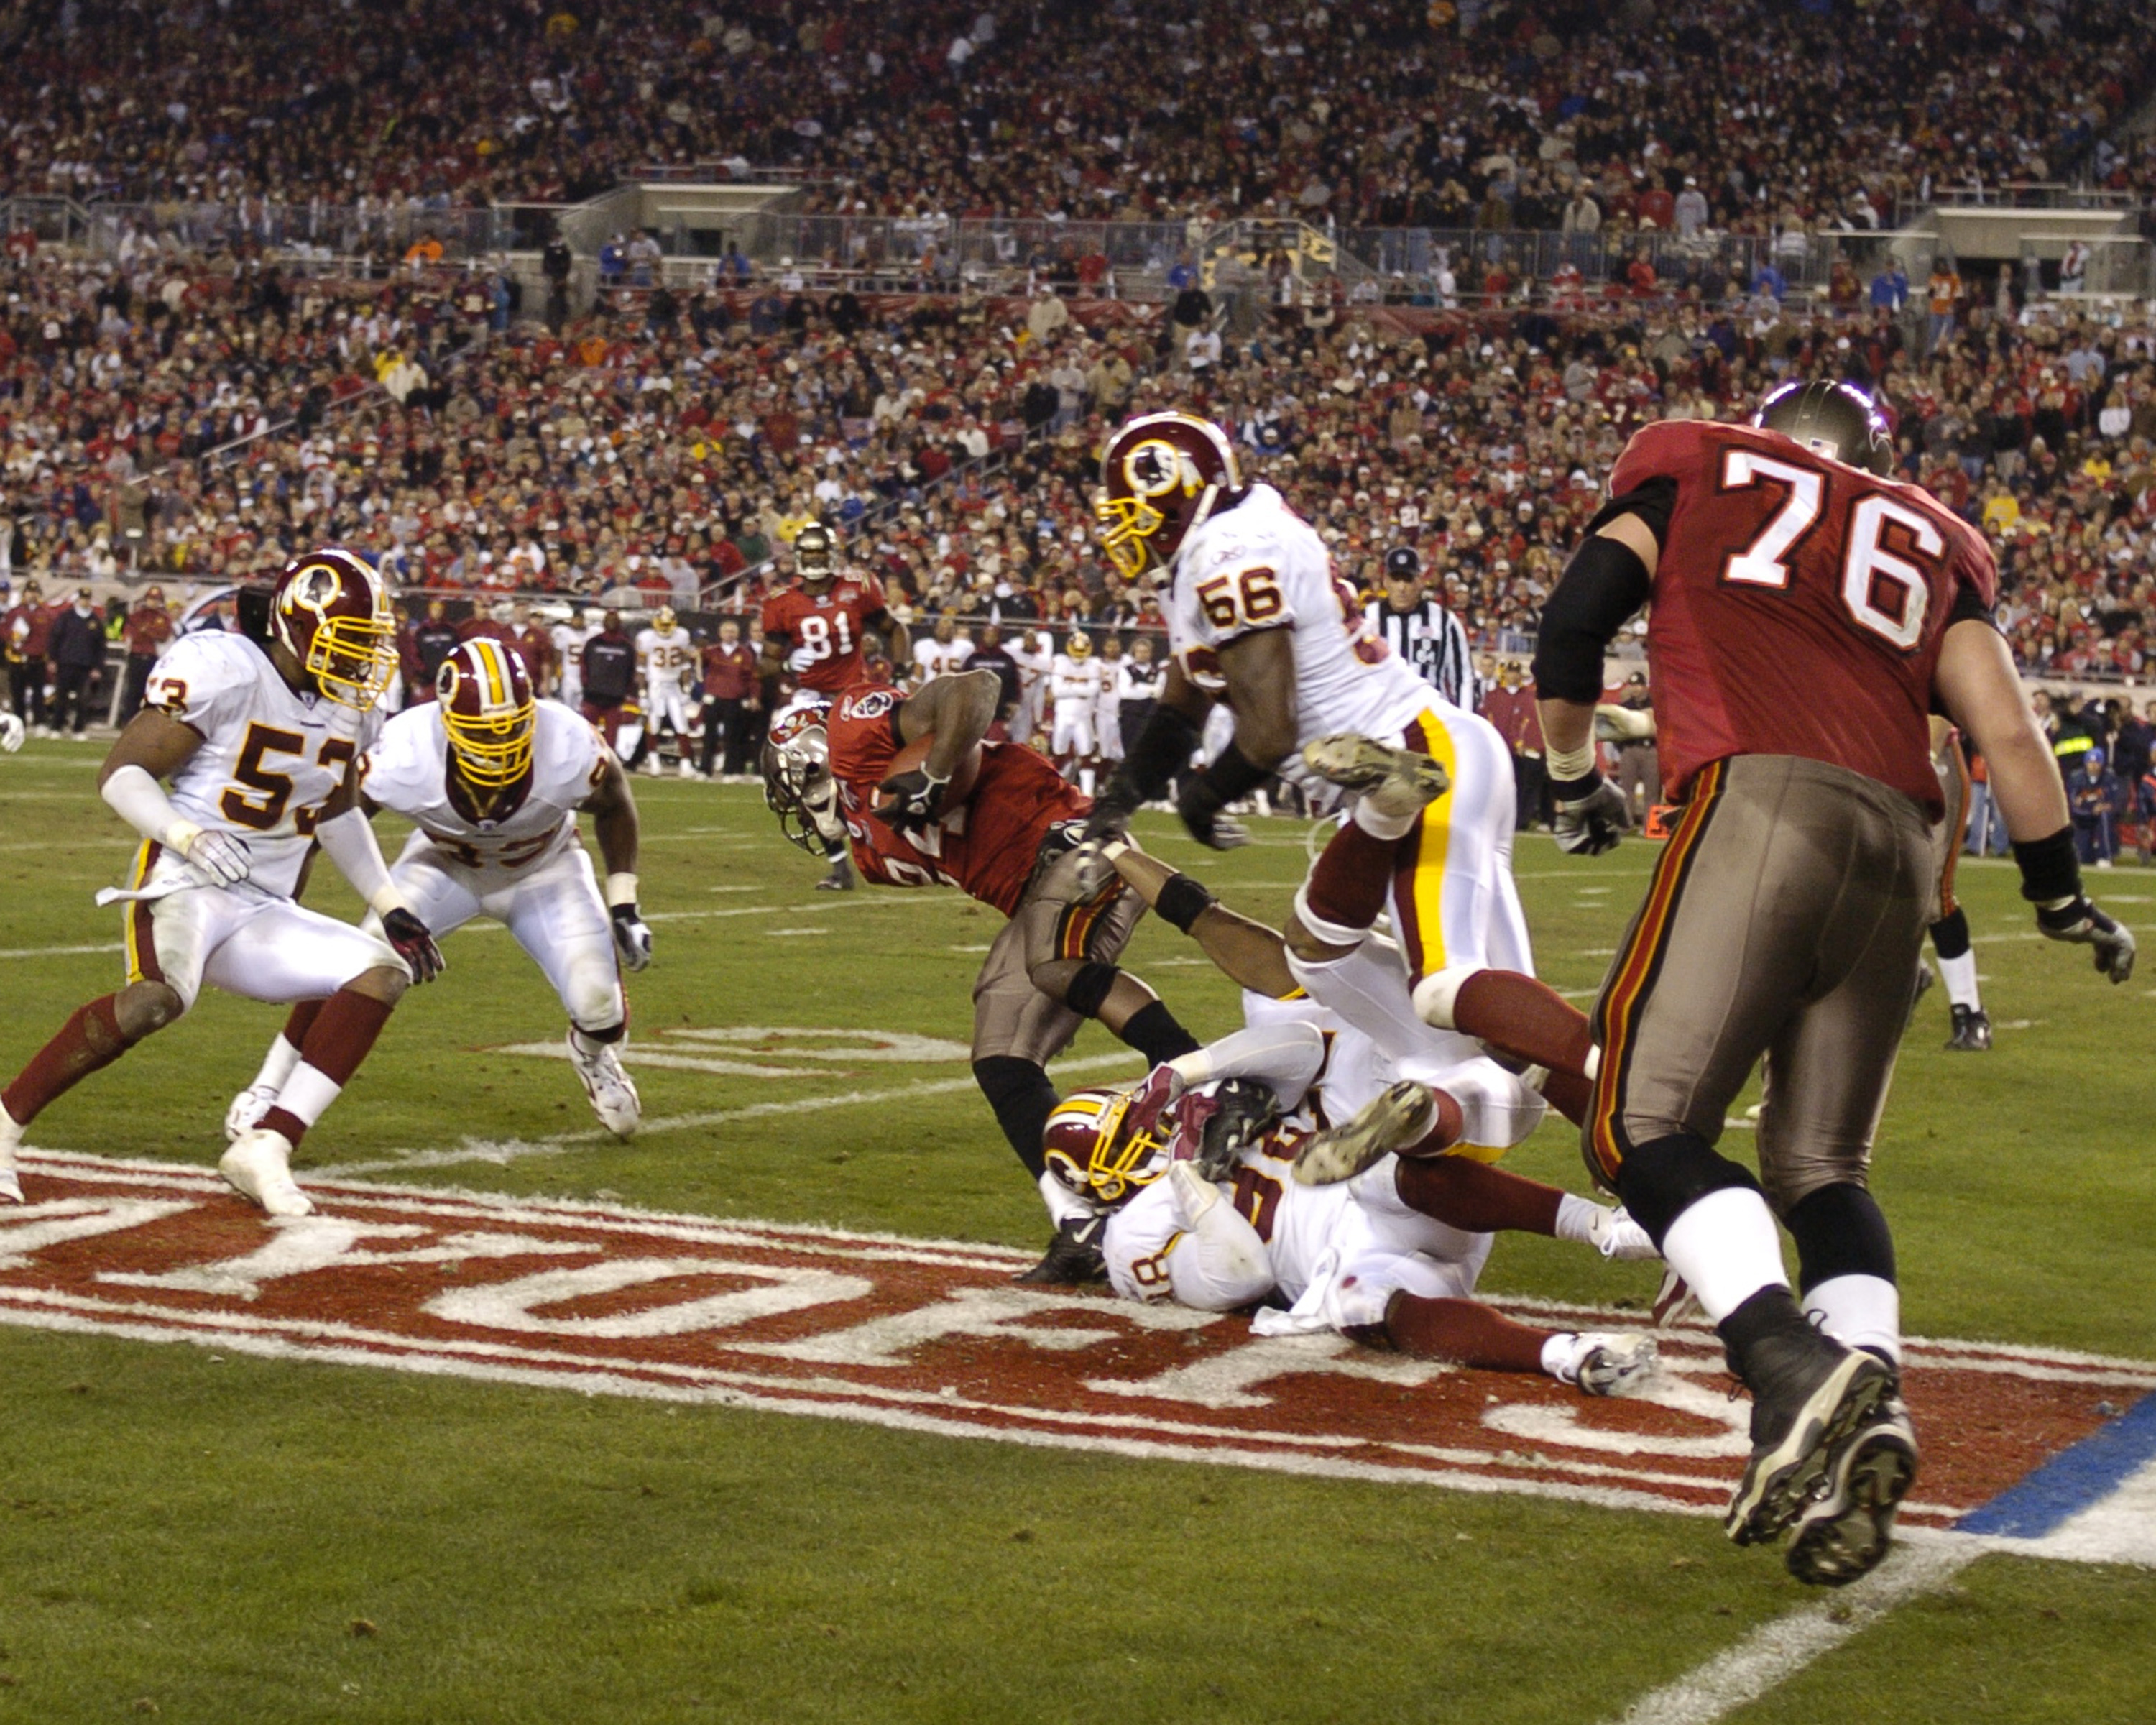 1c51fac2 Tampa Bay Buccaneers running back Carnell Williams weaves upfield for a  gain against the Washington Redskins